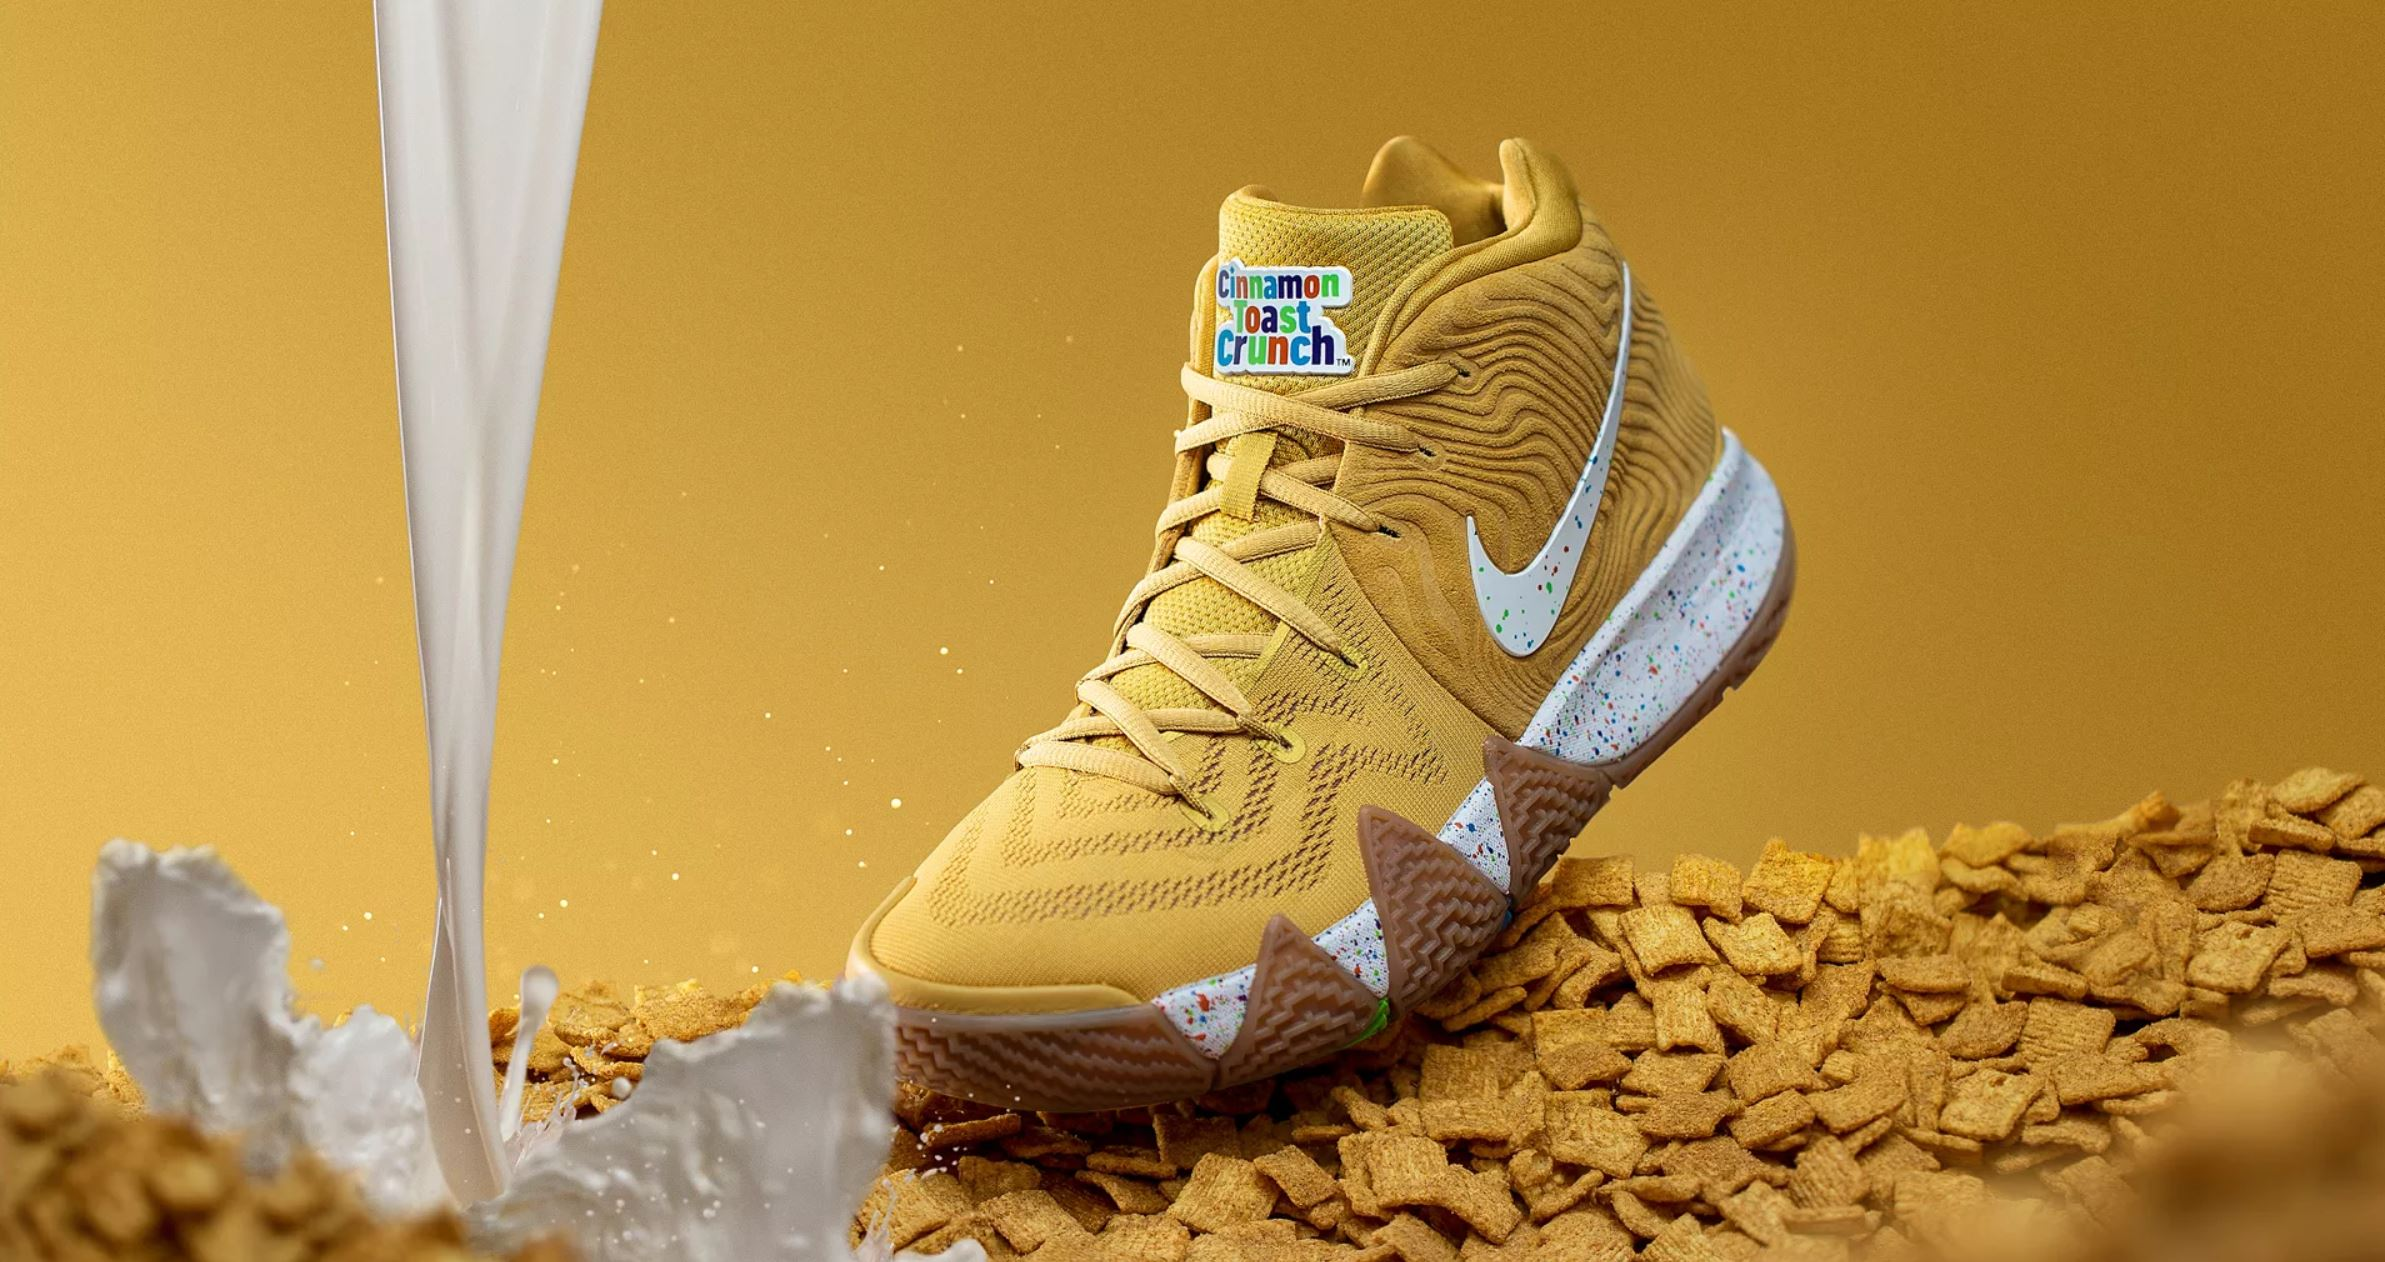 online store 64a67 560c3 Nike Unveils Kyrie 4 'Cereal Pack' with Lucky Charms, Kix ...